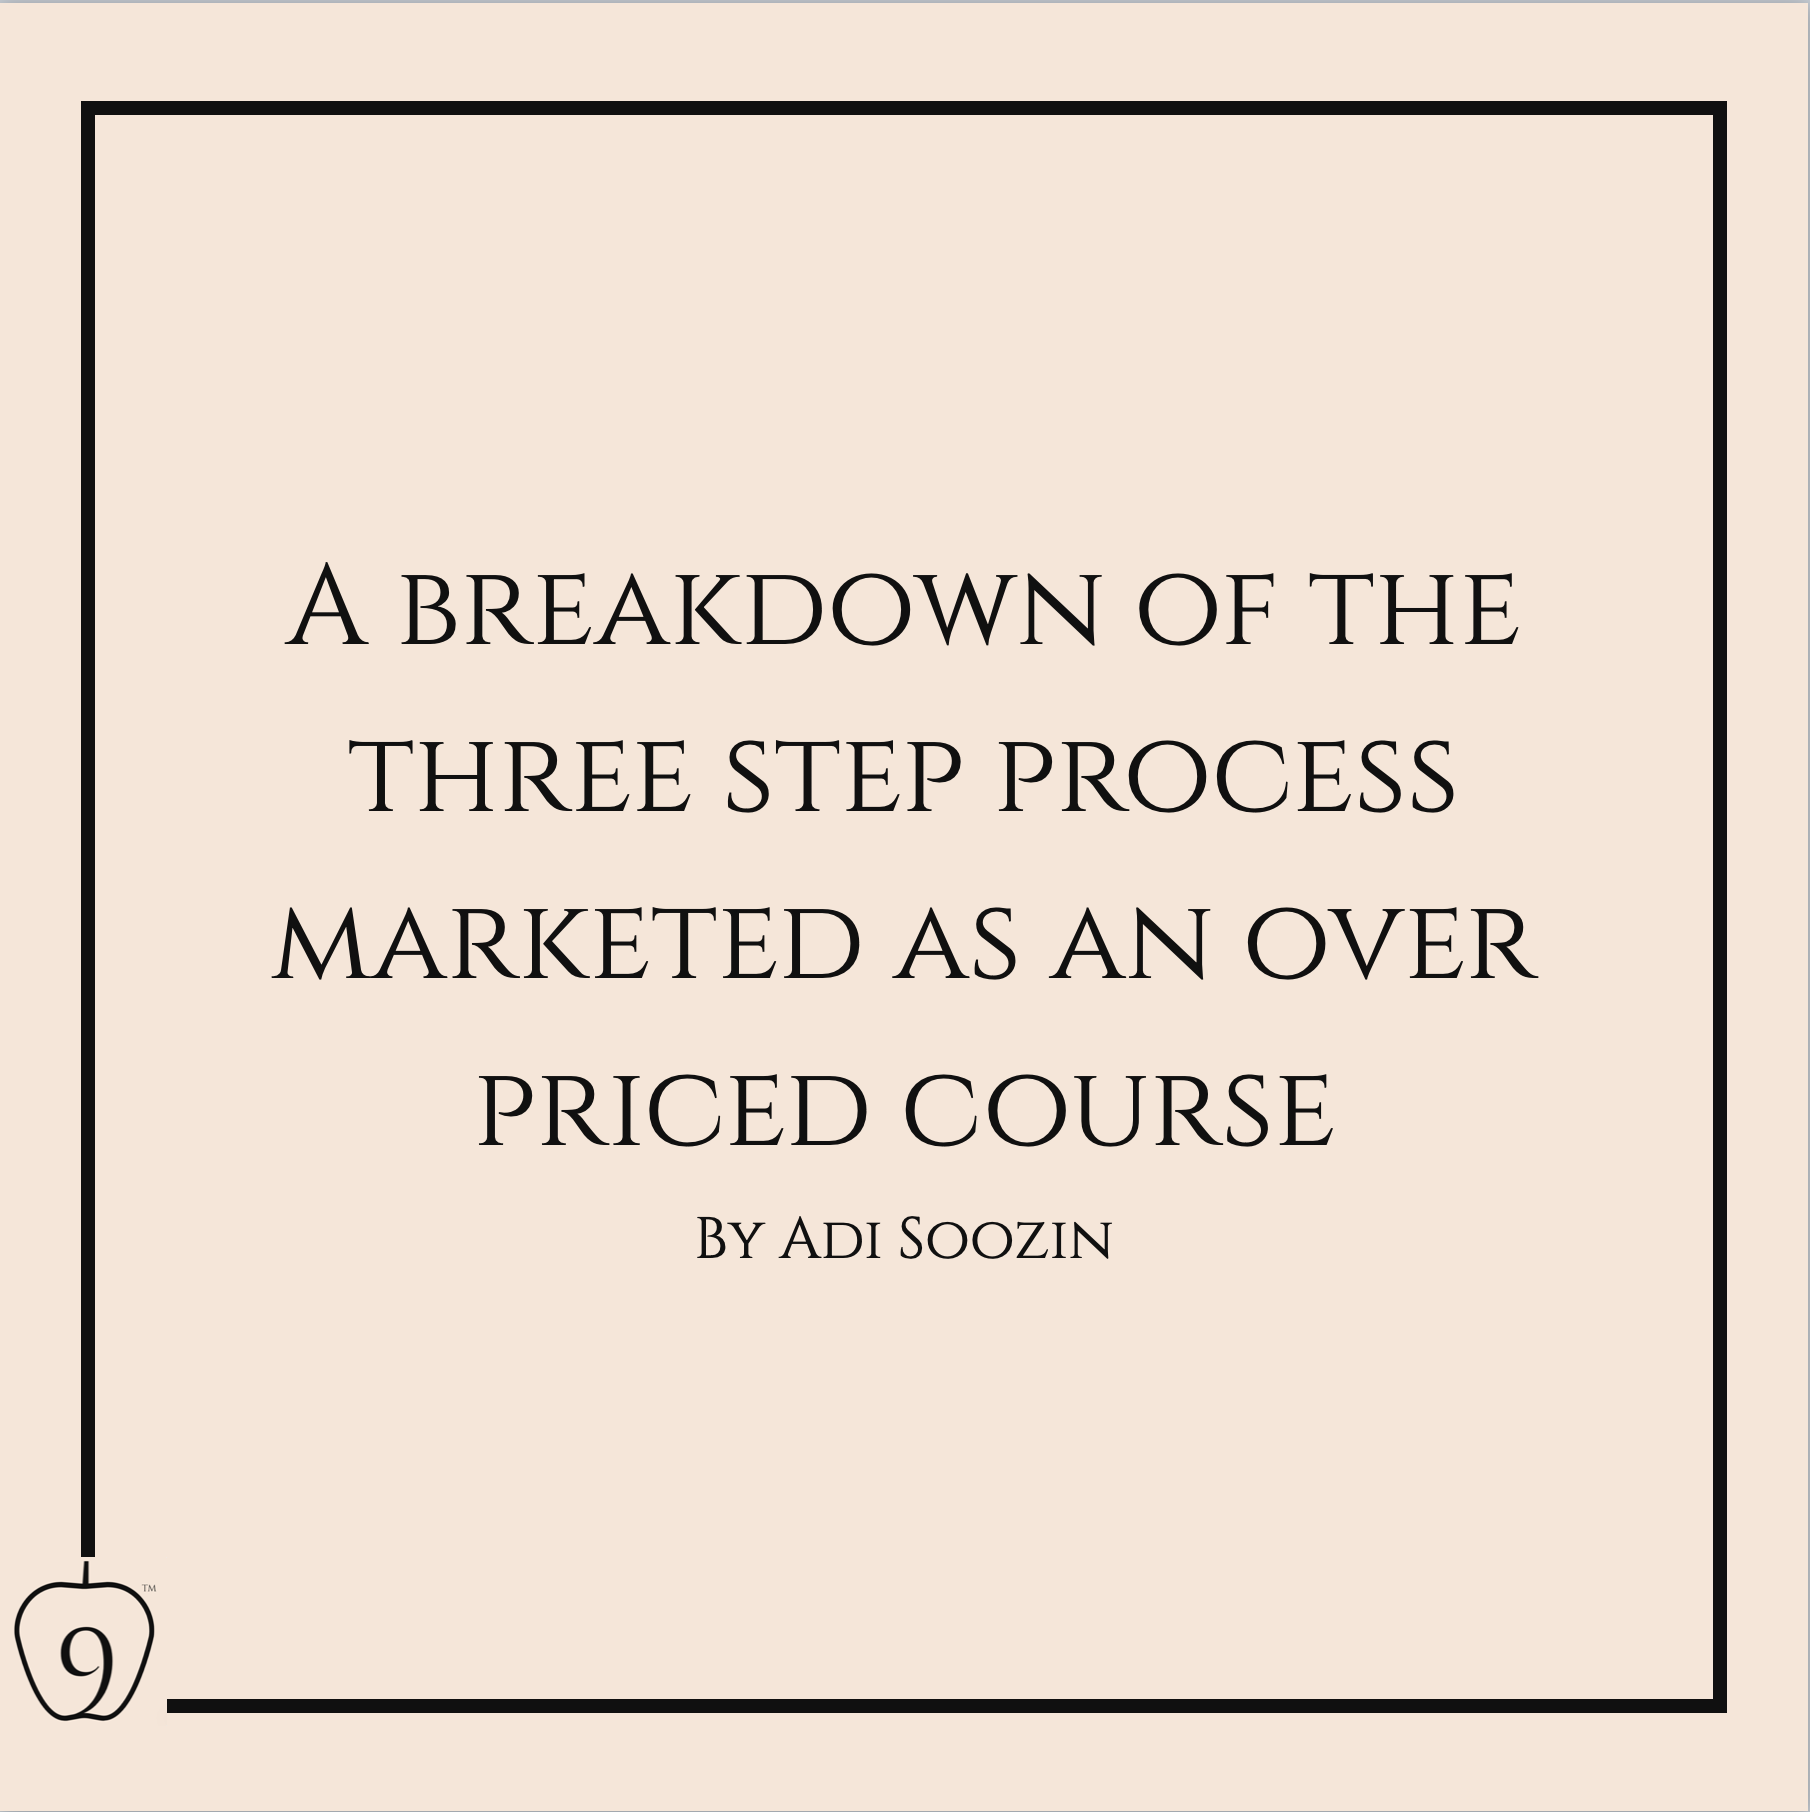 A Breakdown Of The Three Step Process Marketed As An Over Priced Course